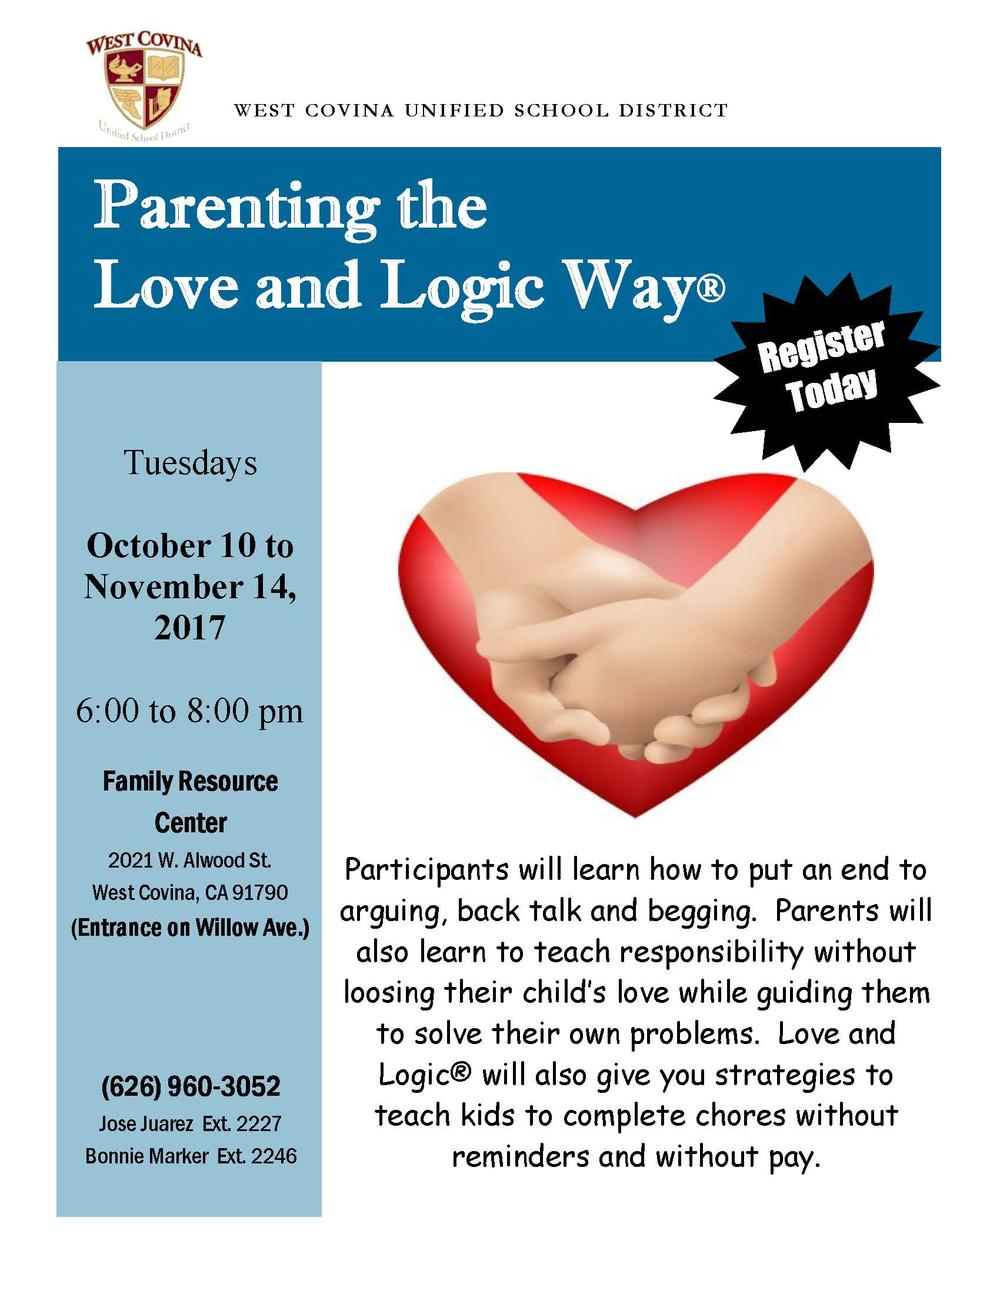 Parenting the the Love and Logic Way Register today, October 10